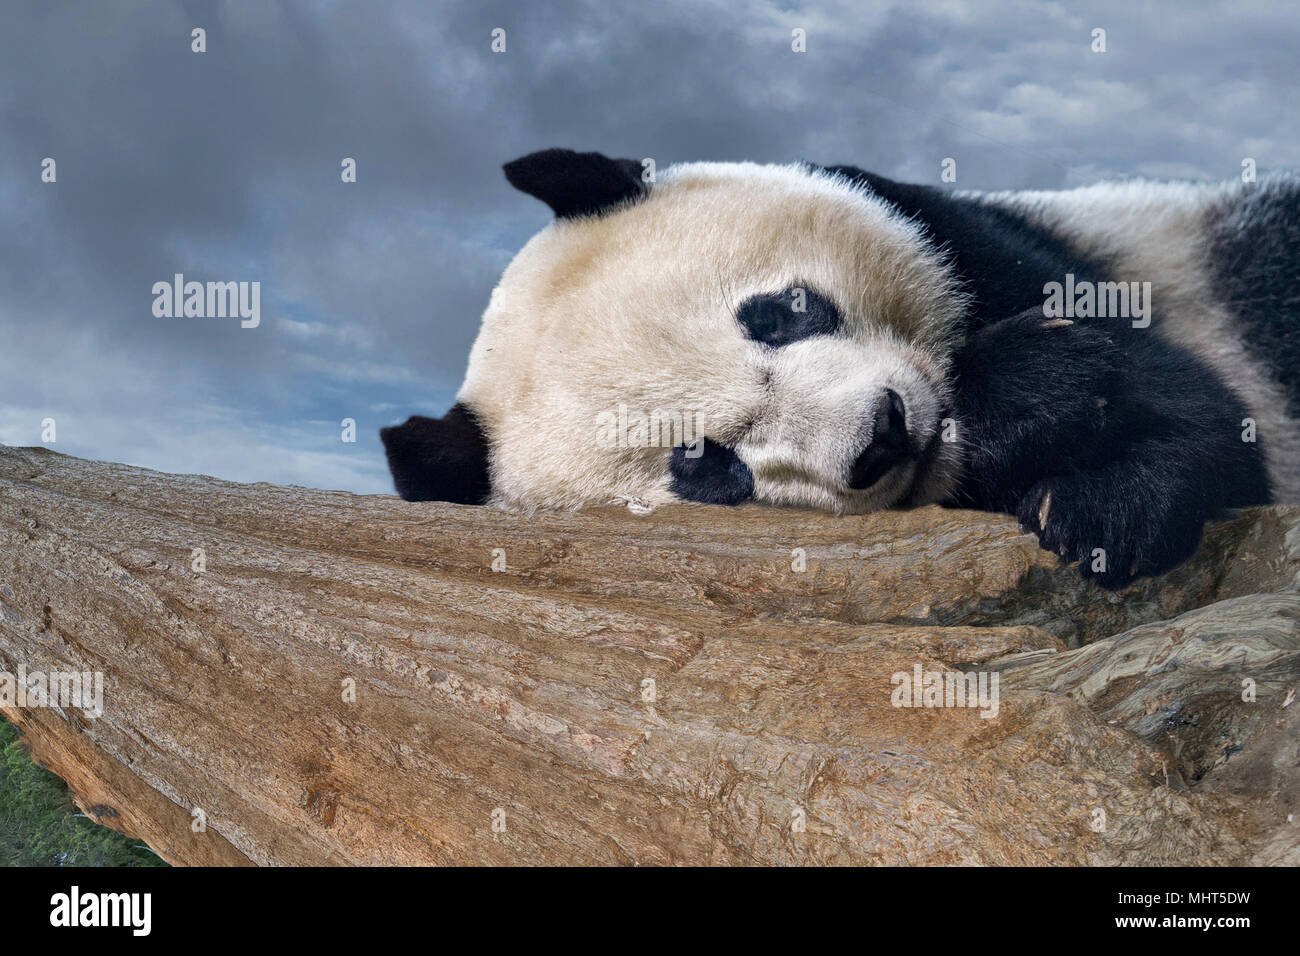 giant panda newborn baby portrait close up while looking at you - Stock Image